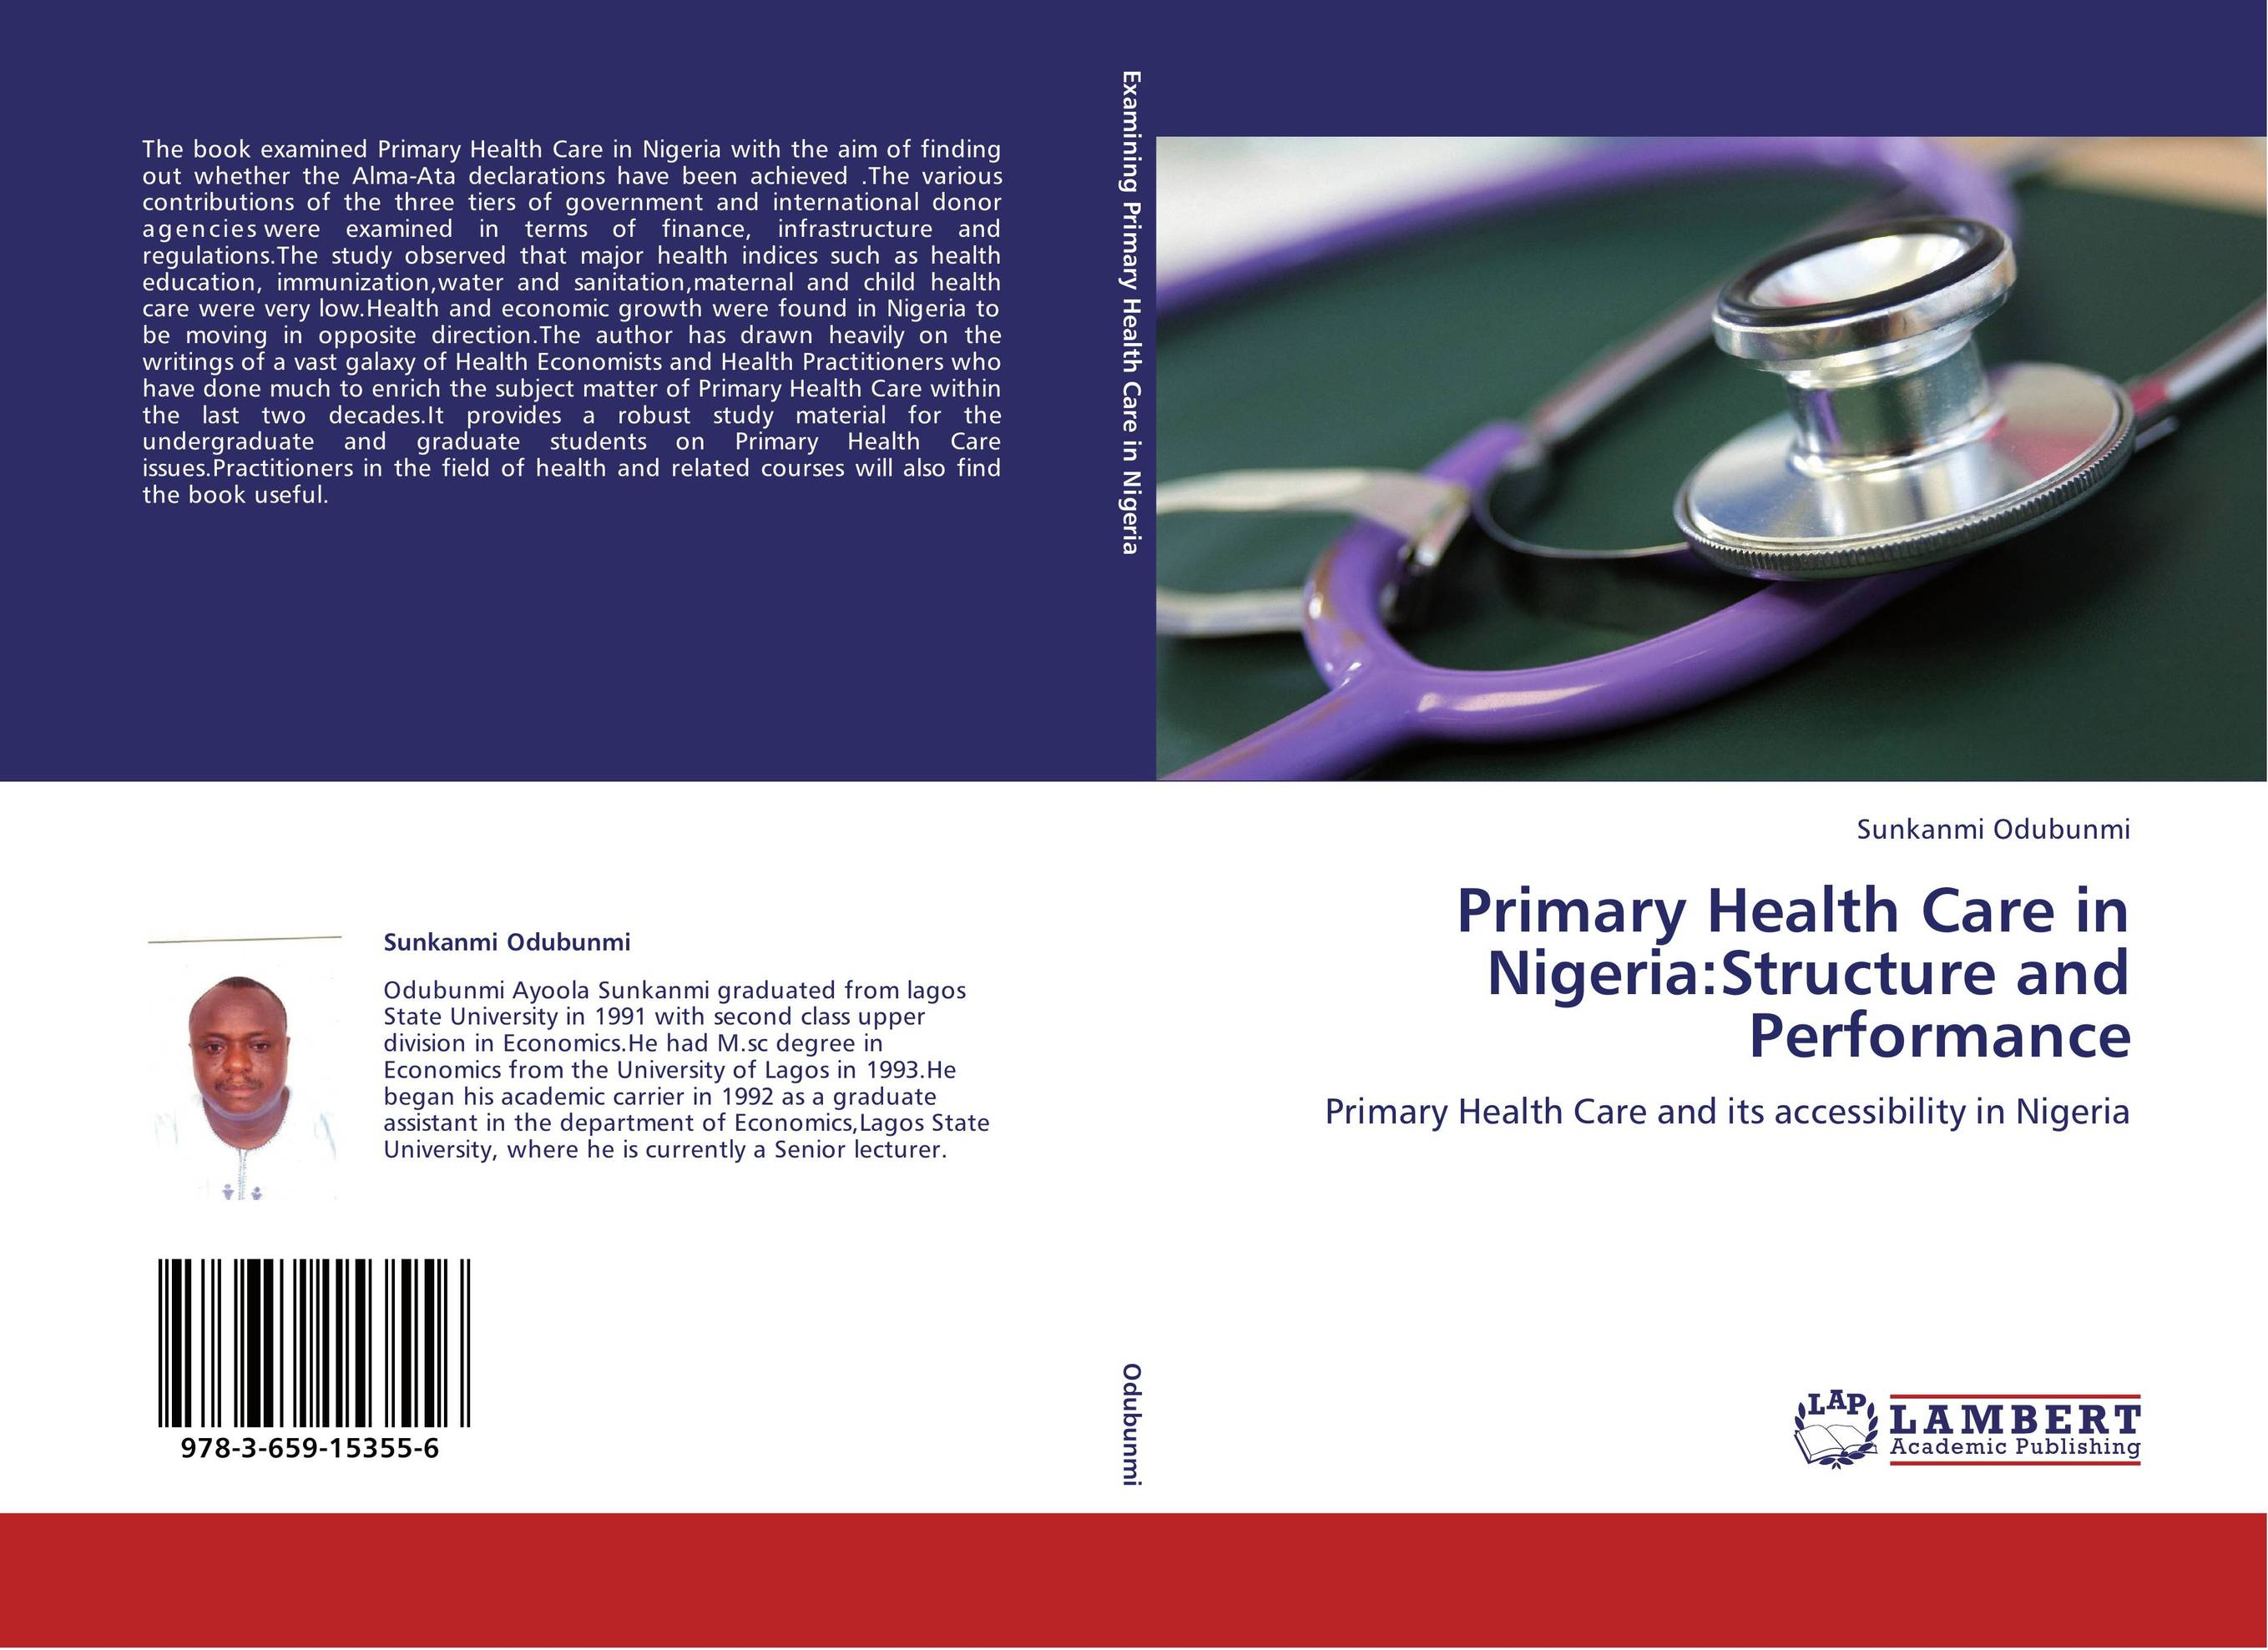 contribution of primary care to health systems The contribution of primary care to health and health systems in low- and middle-income countries: a critical review of major primary care initiatives by margaret elizabeth kruk, denis porignon, peter c rockers and wim van lerberghe.